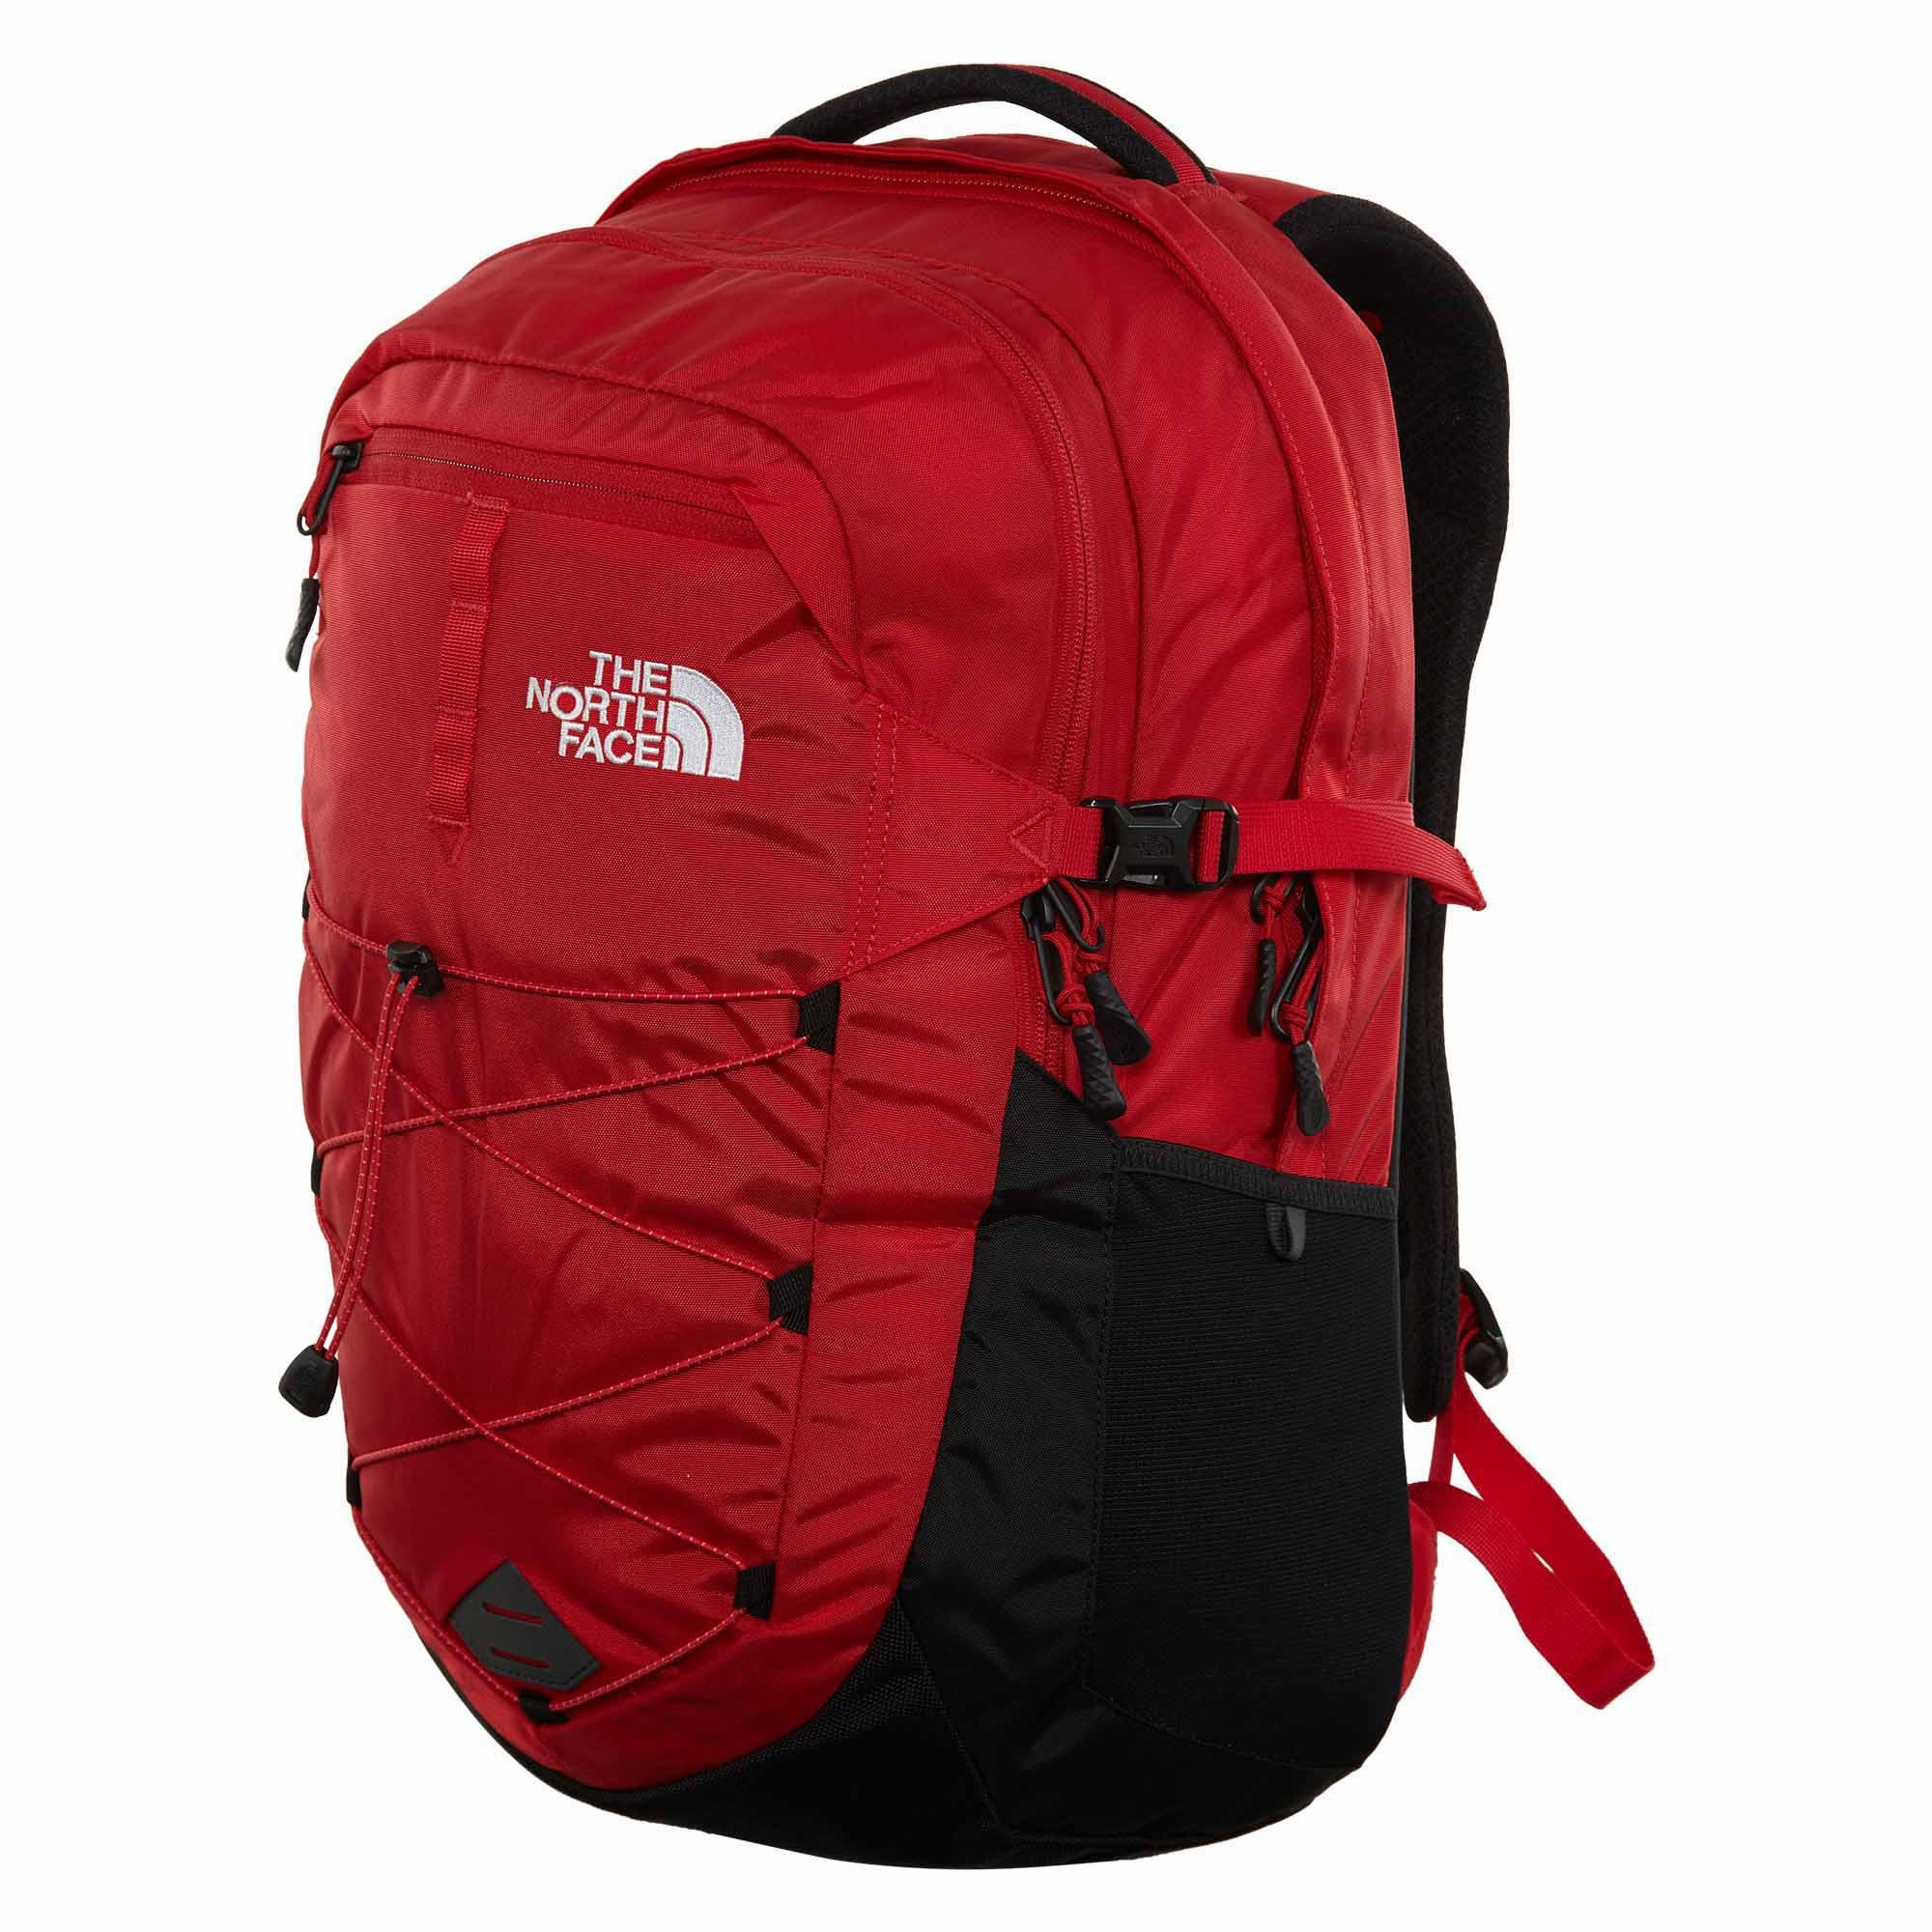 The North Face Unisex Borealis Tnf Red/Tnf Black One Size